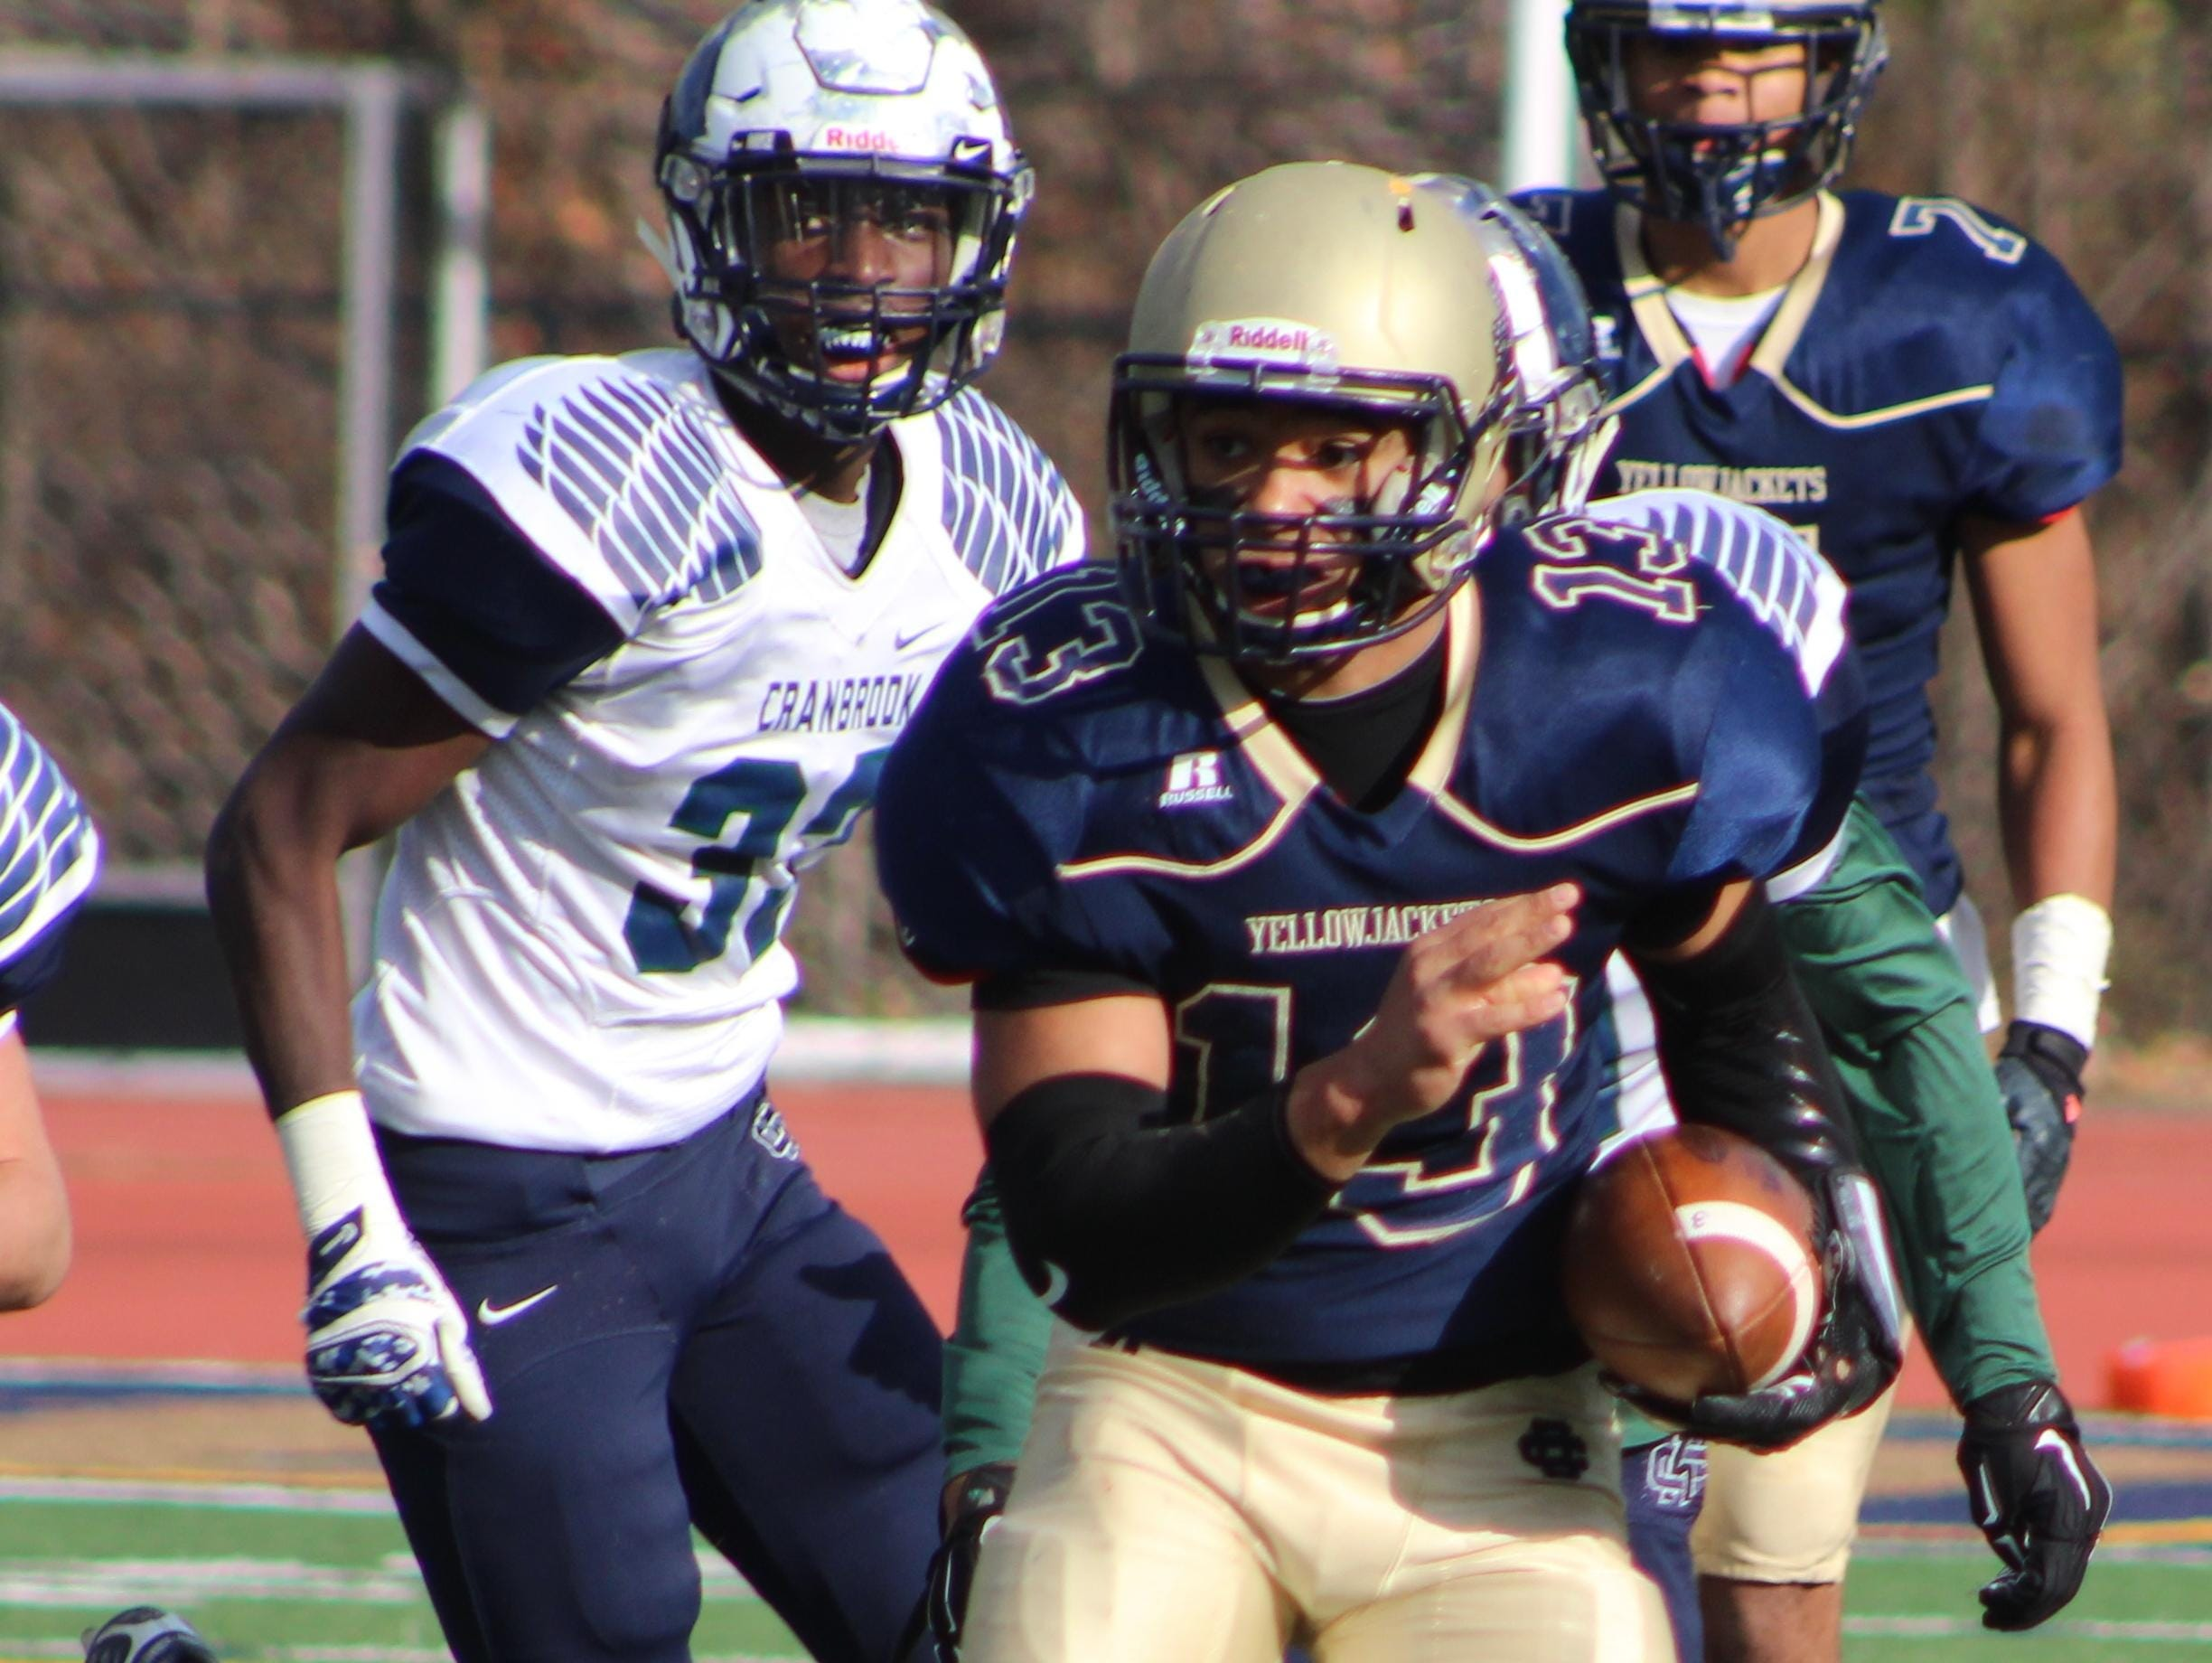 Junior Steve Mann led Country Day to an excellent 11-2 record in his first season as a starting quarterback.